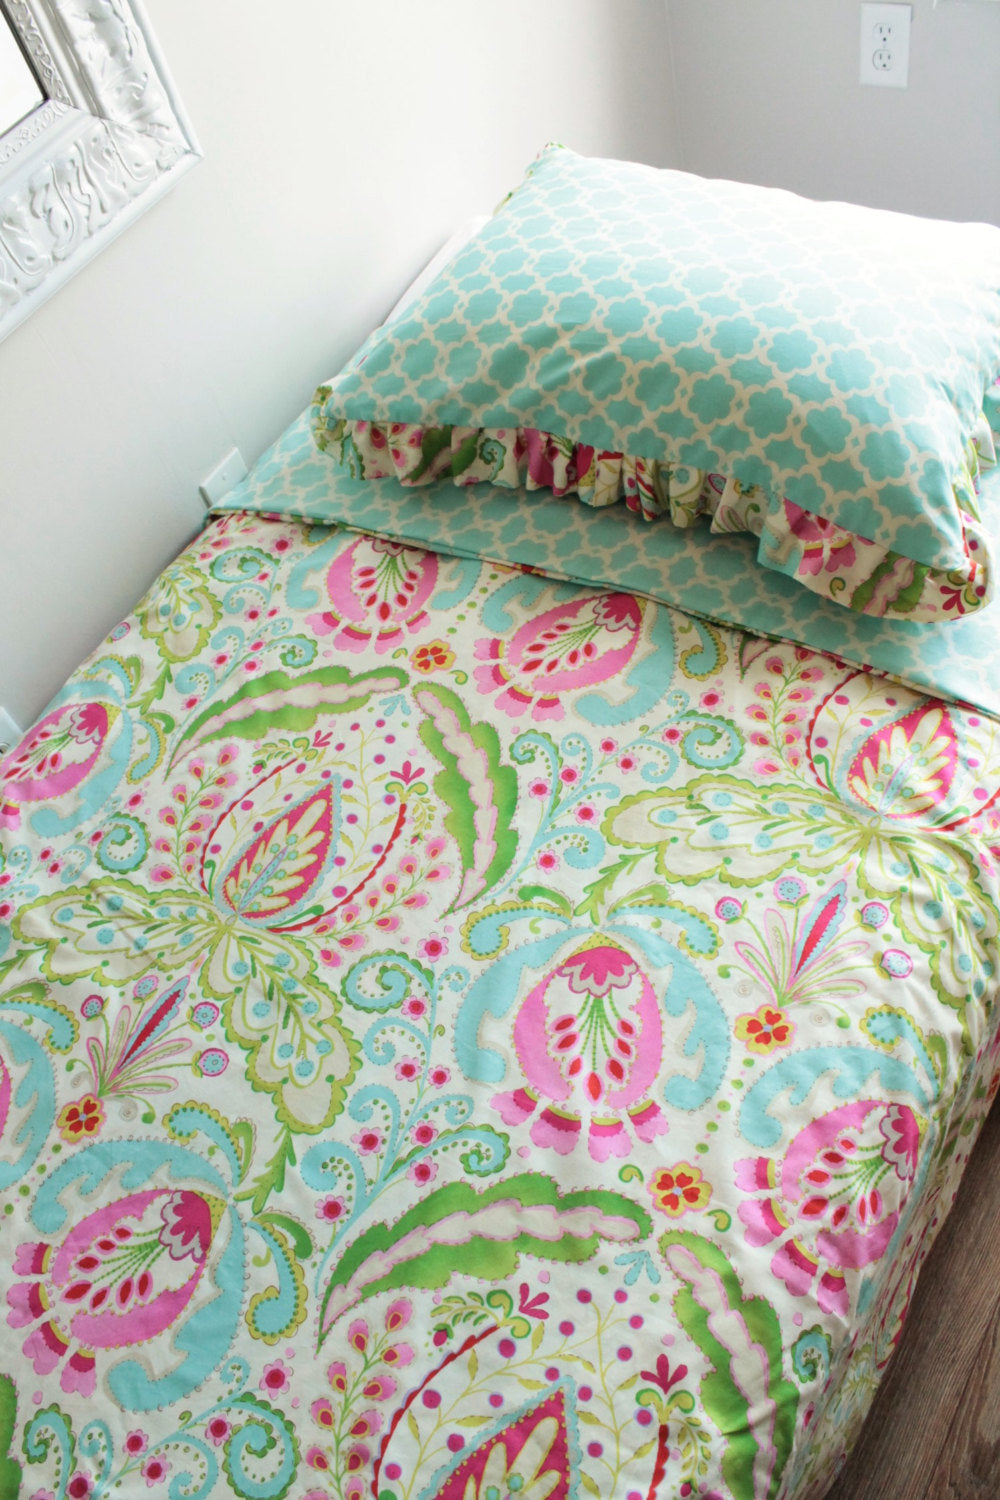 Kumari Twin Size Duvet Cover bedding set with sham.